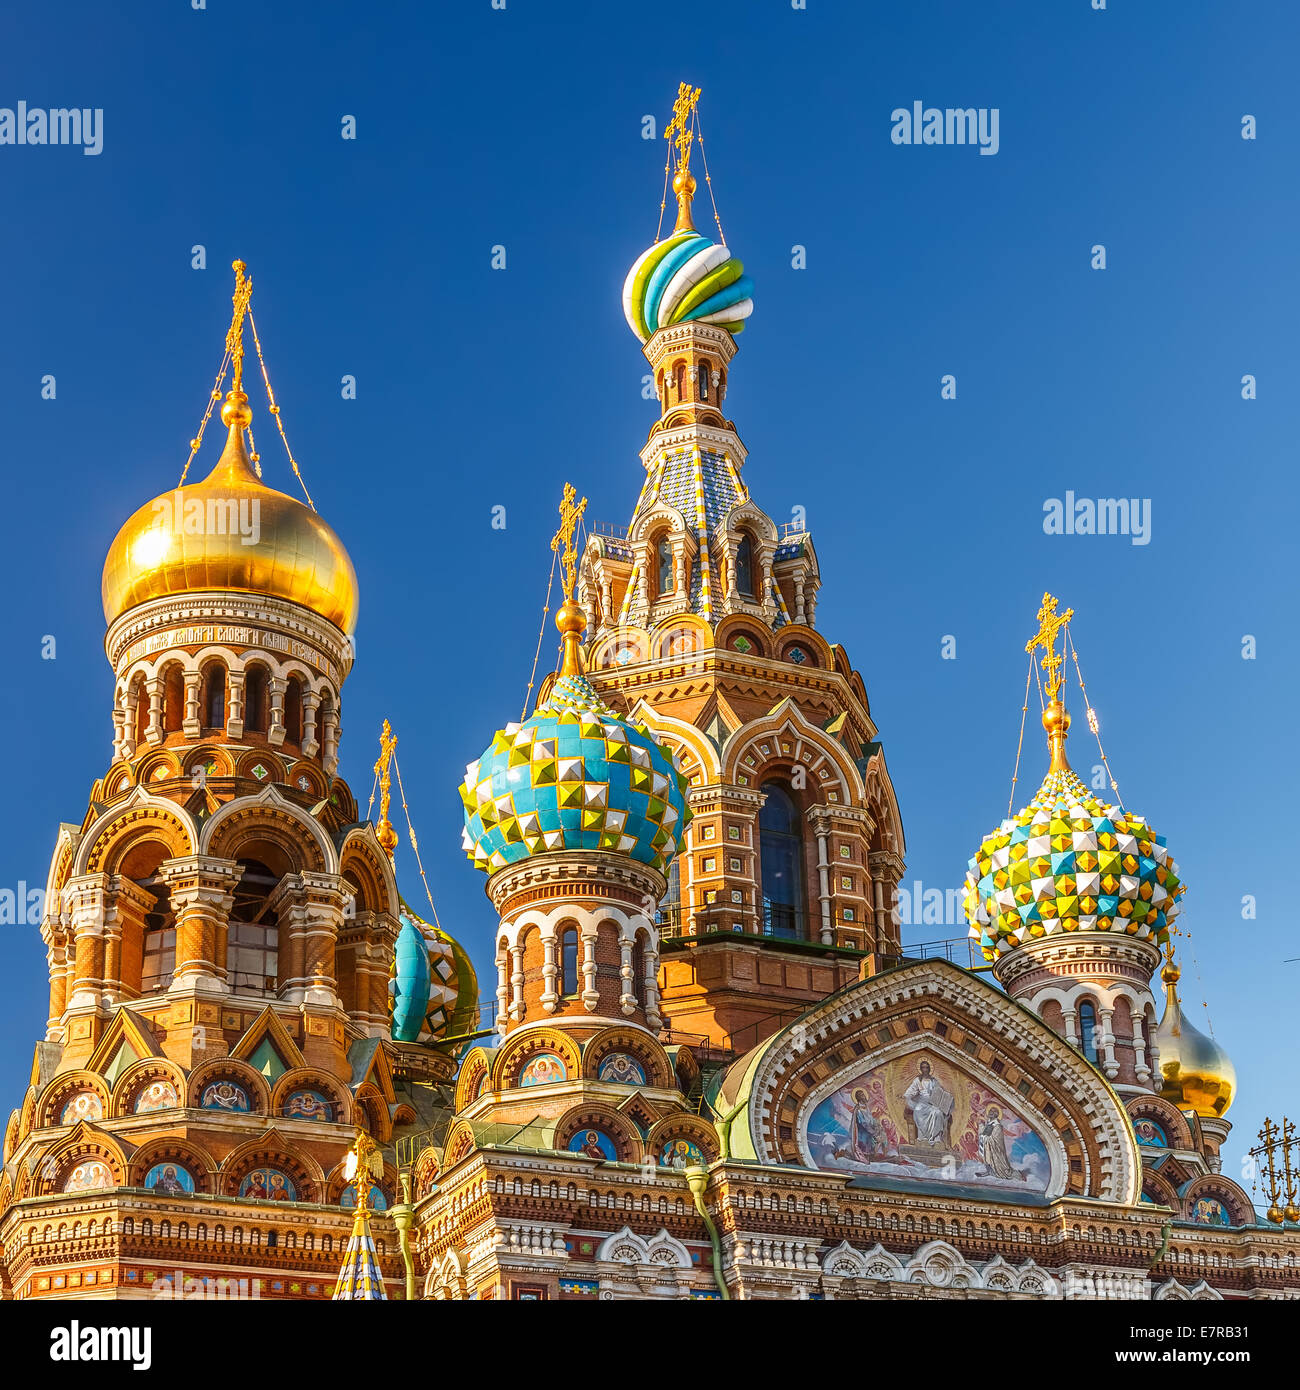 Church of the Savior on Spilled Blood - Stock Image